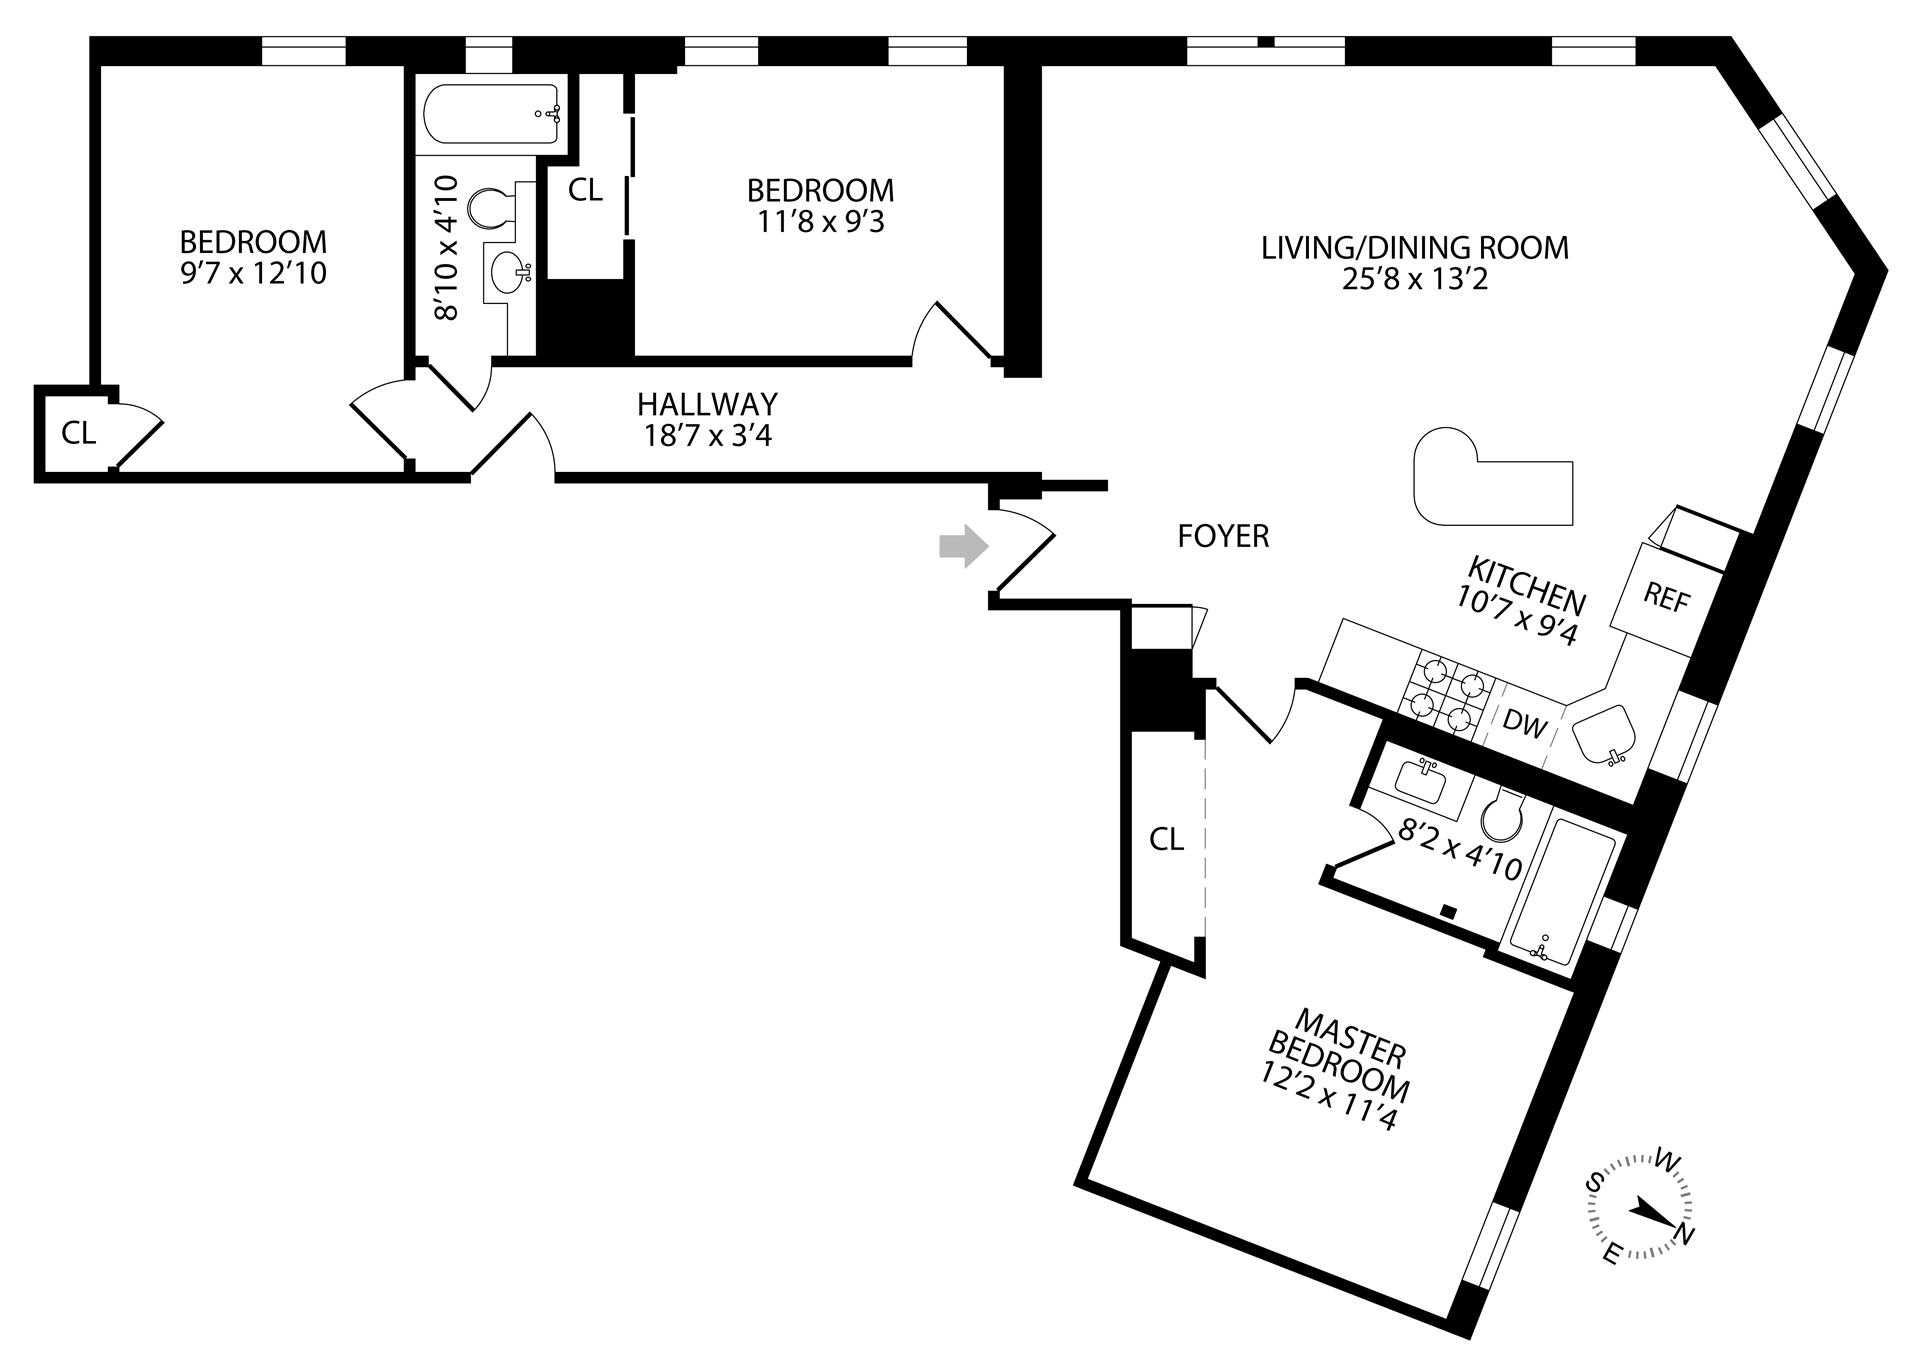 Floor plan of 15 Butler Pl, 2C - Prospect Heights, New York